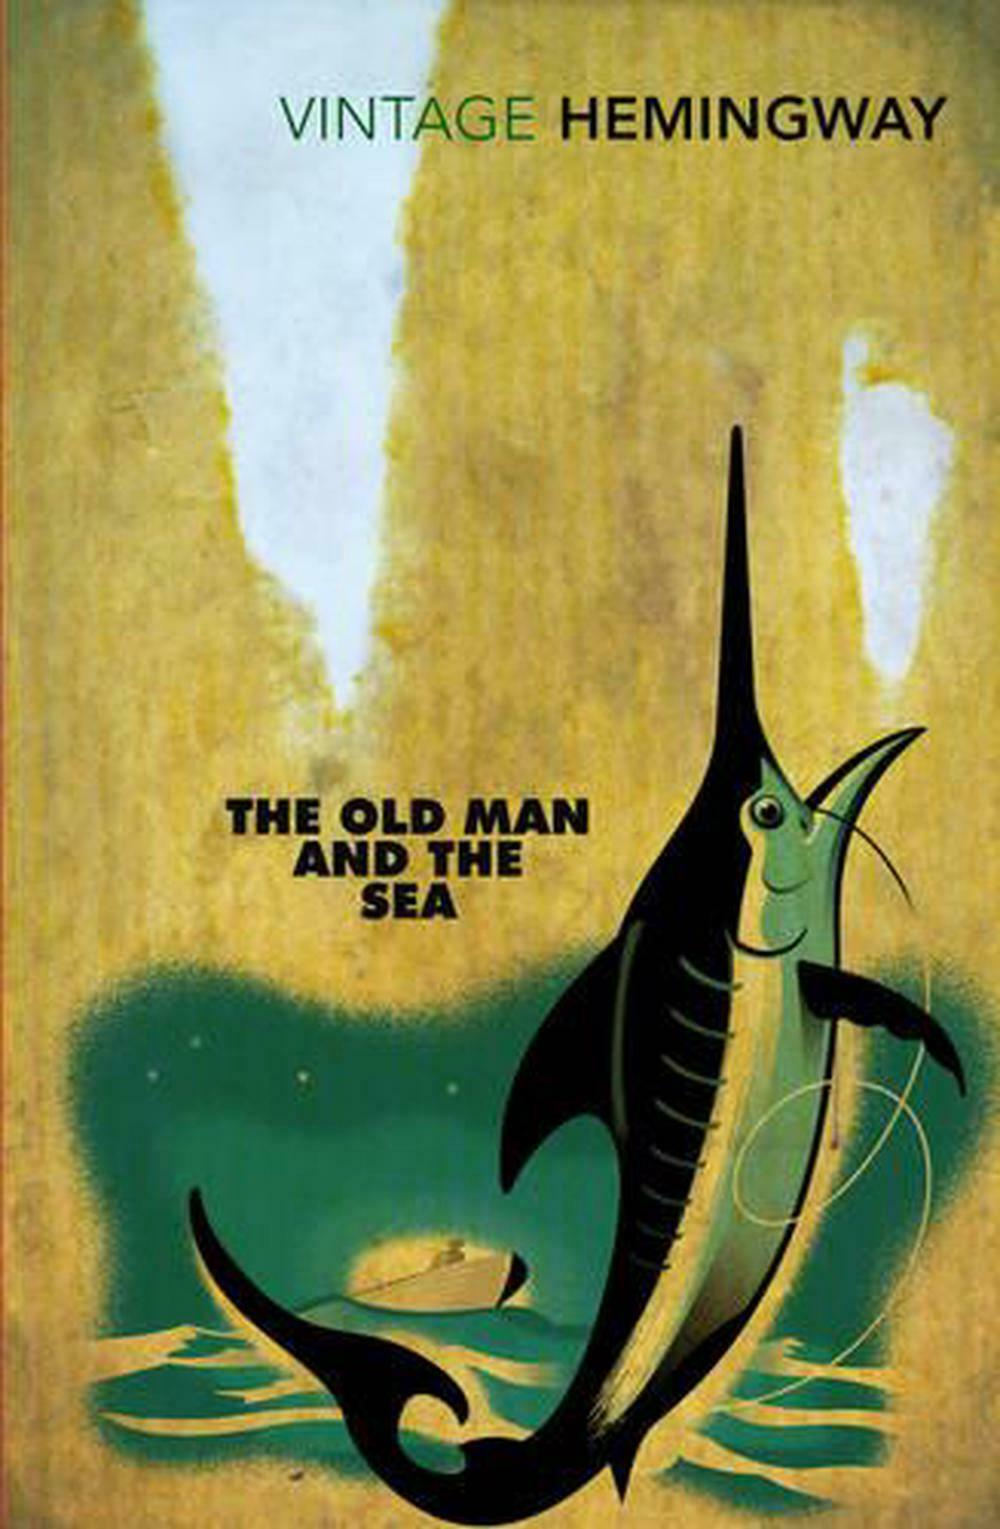 the macho man in the novel the old man and the sea by ernest hemingway The old man and the sea by ernest hemingway, 9780099908401, available at book depository with free delivery worldwide.